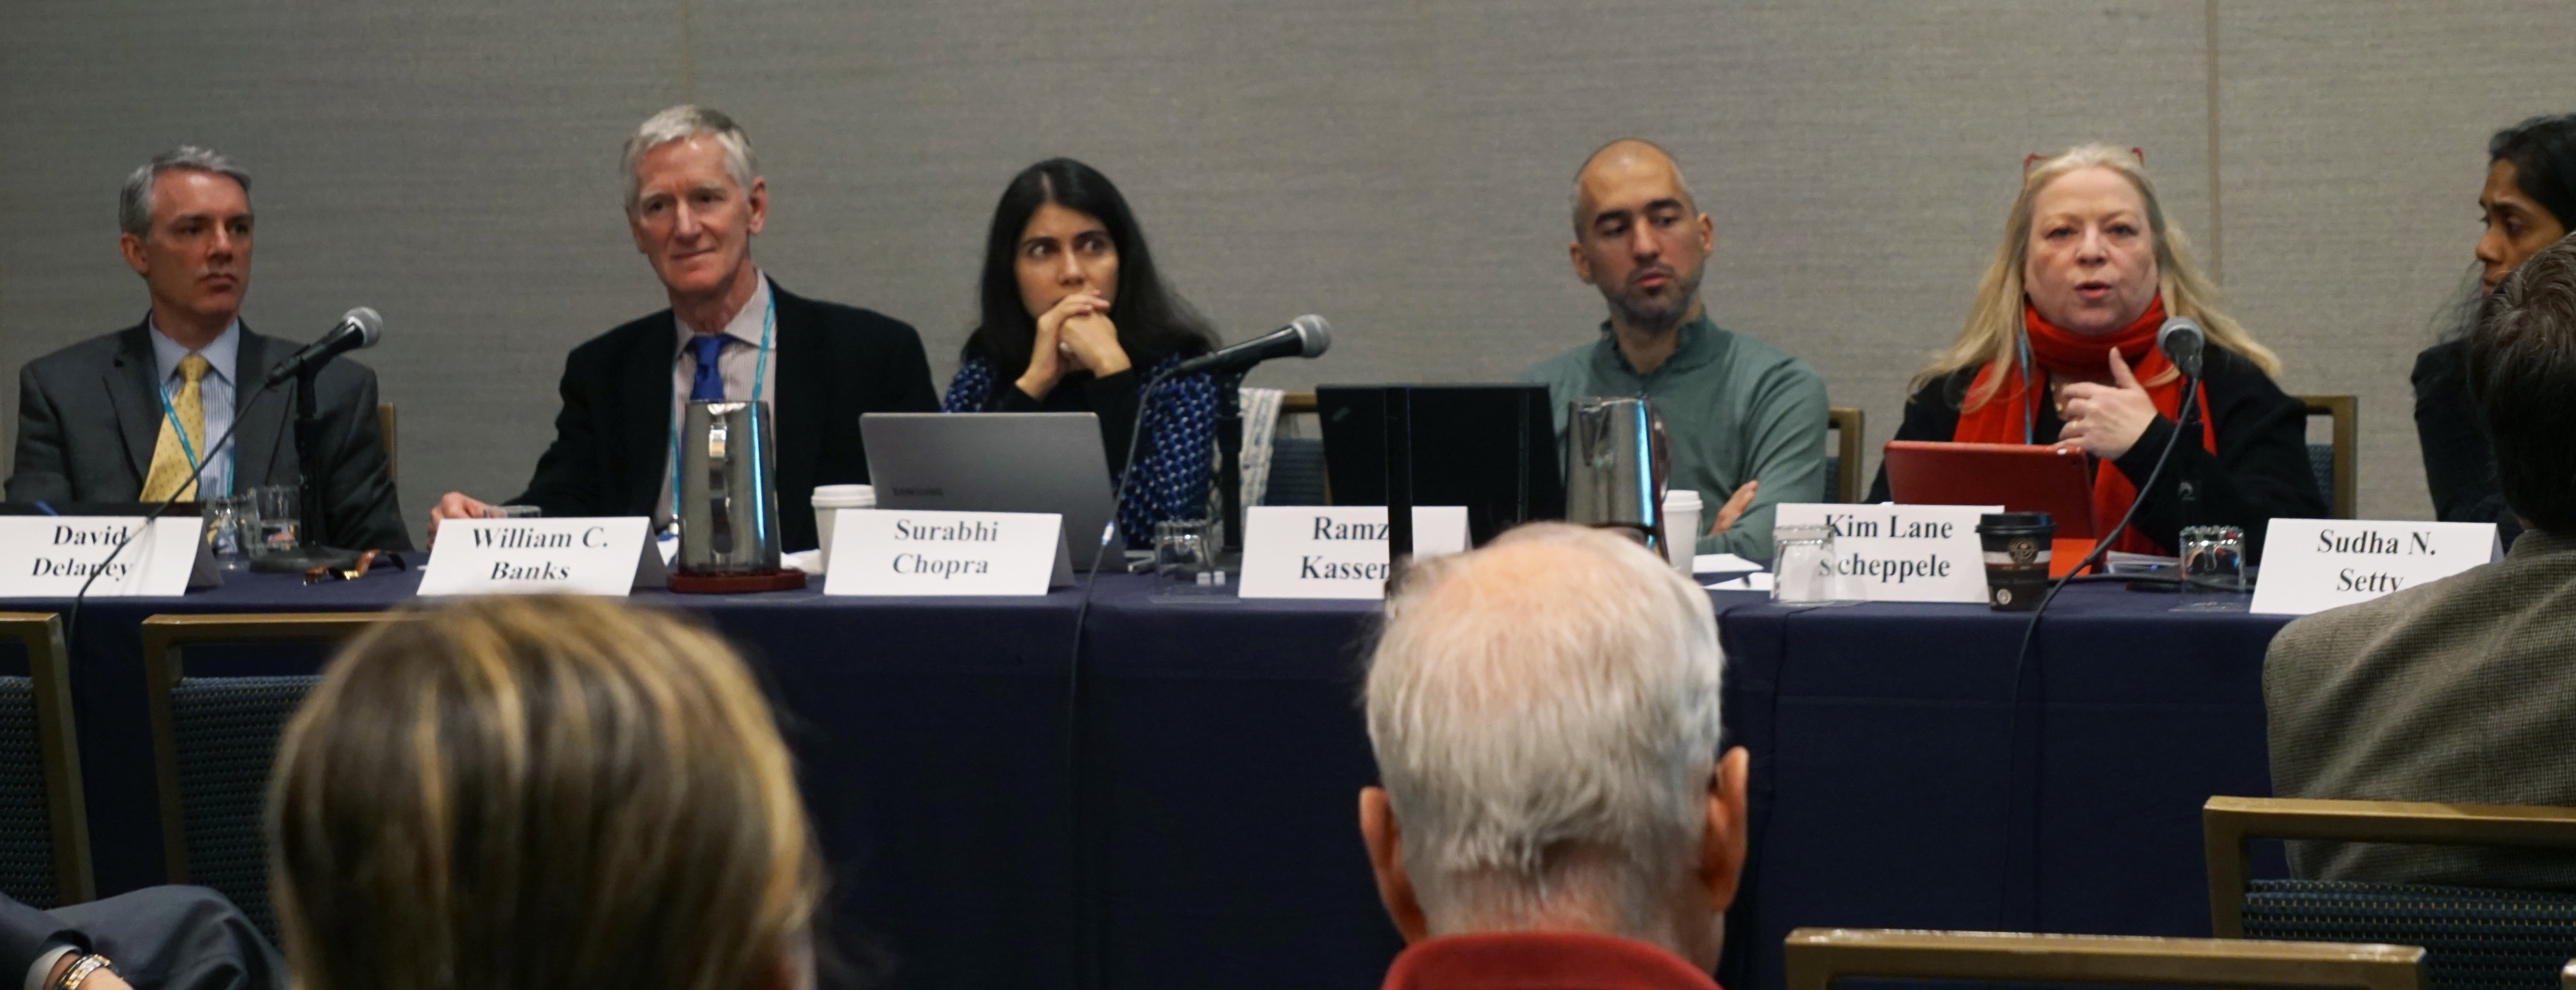 National Security Law panel at the 2017 AALS Annual Meeting